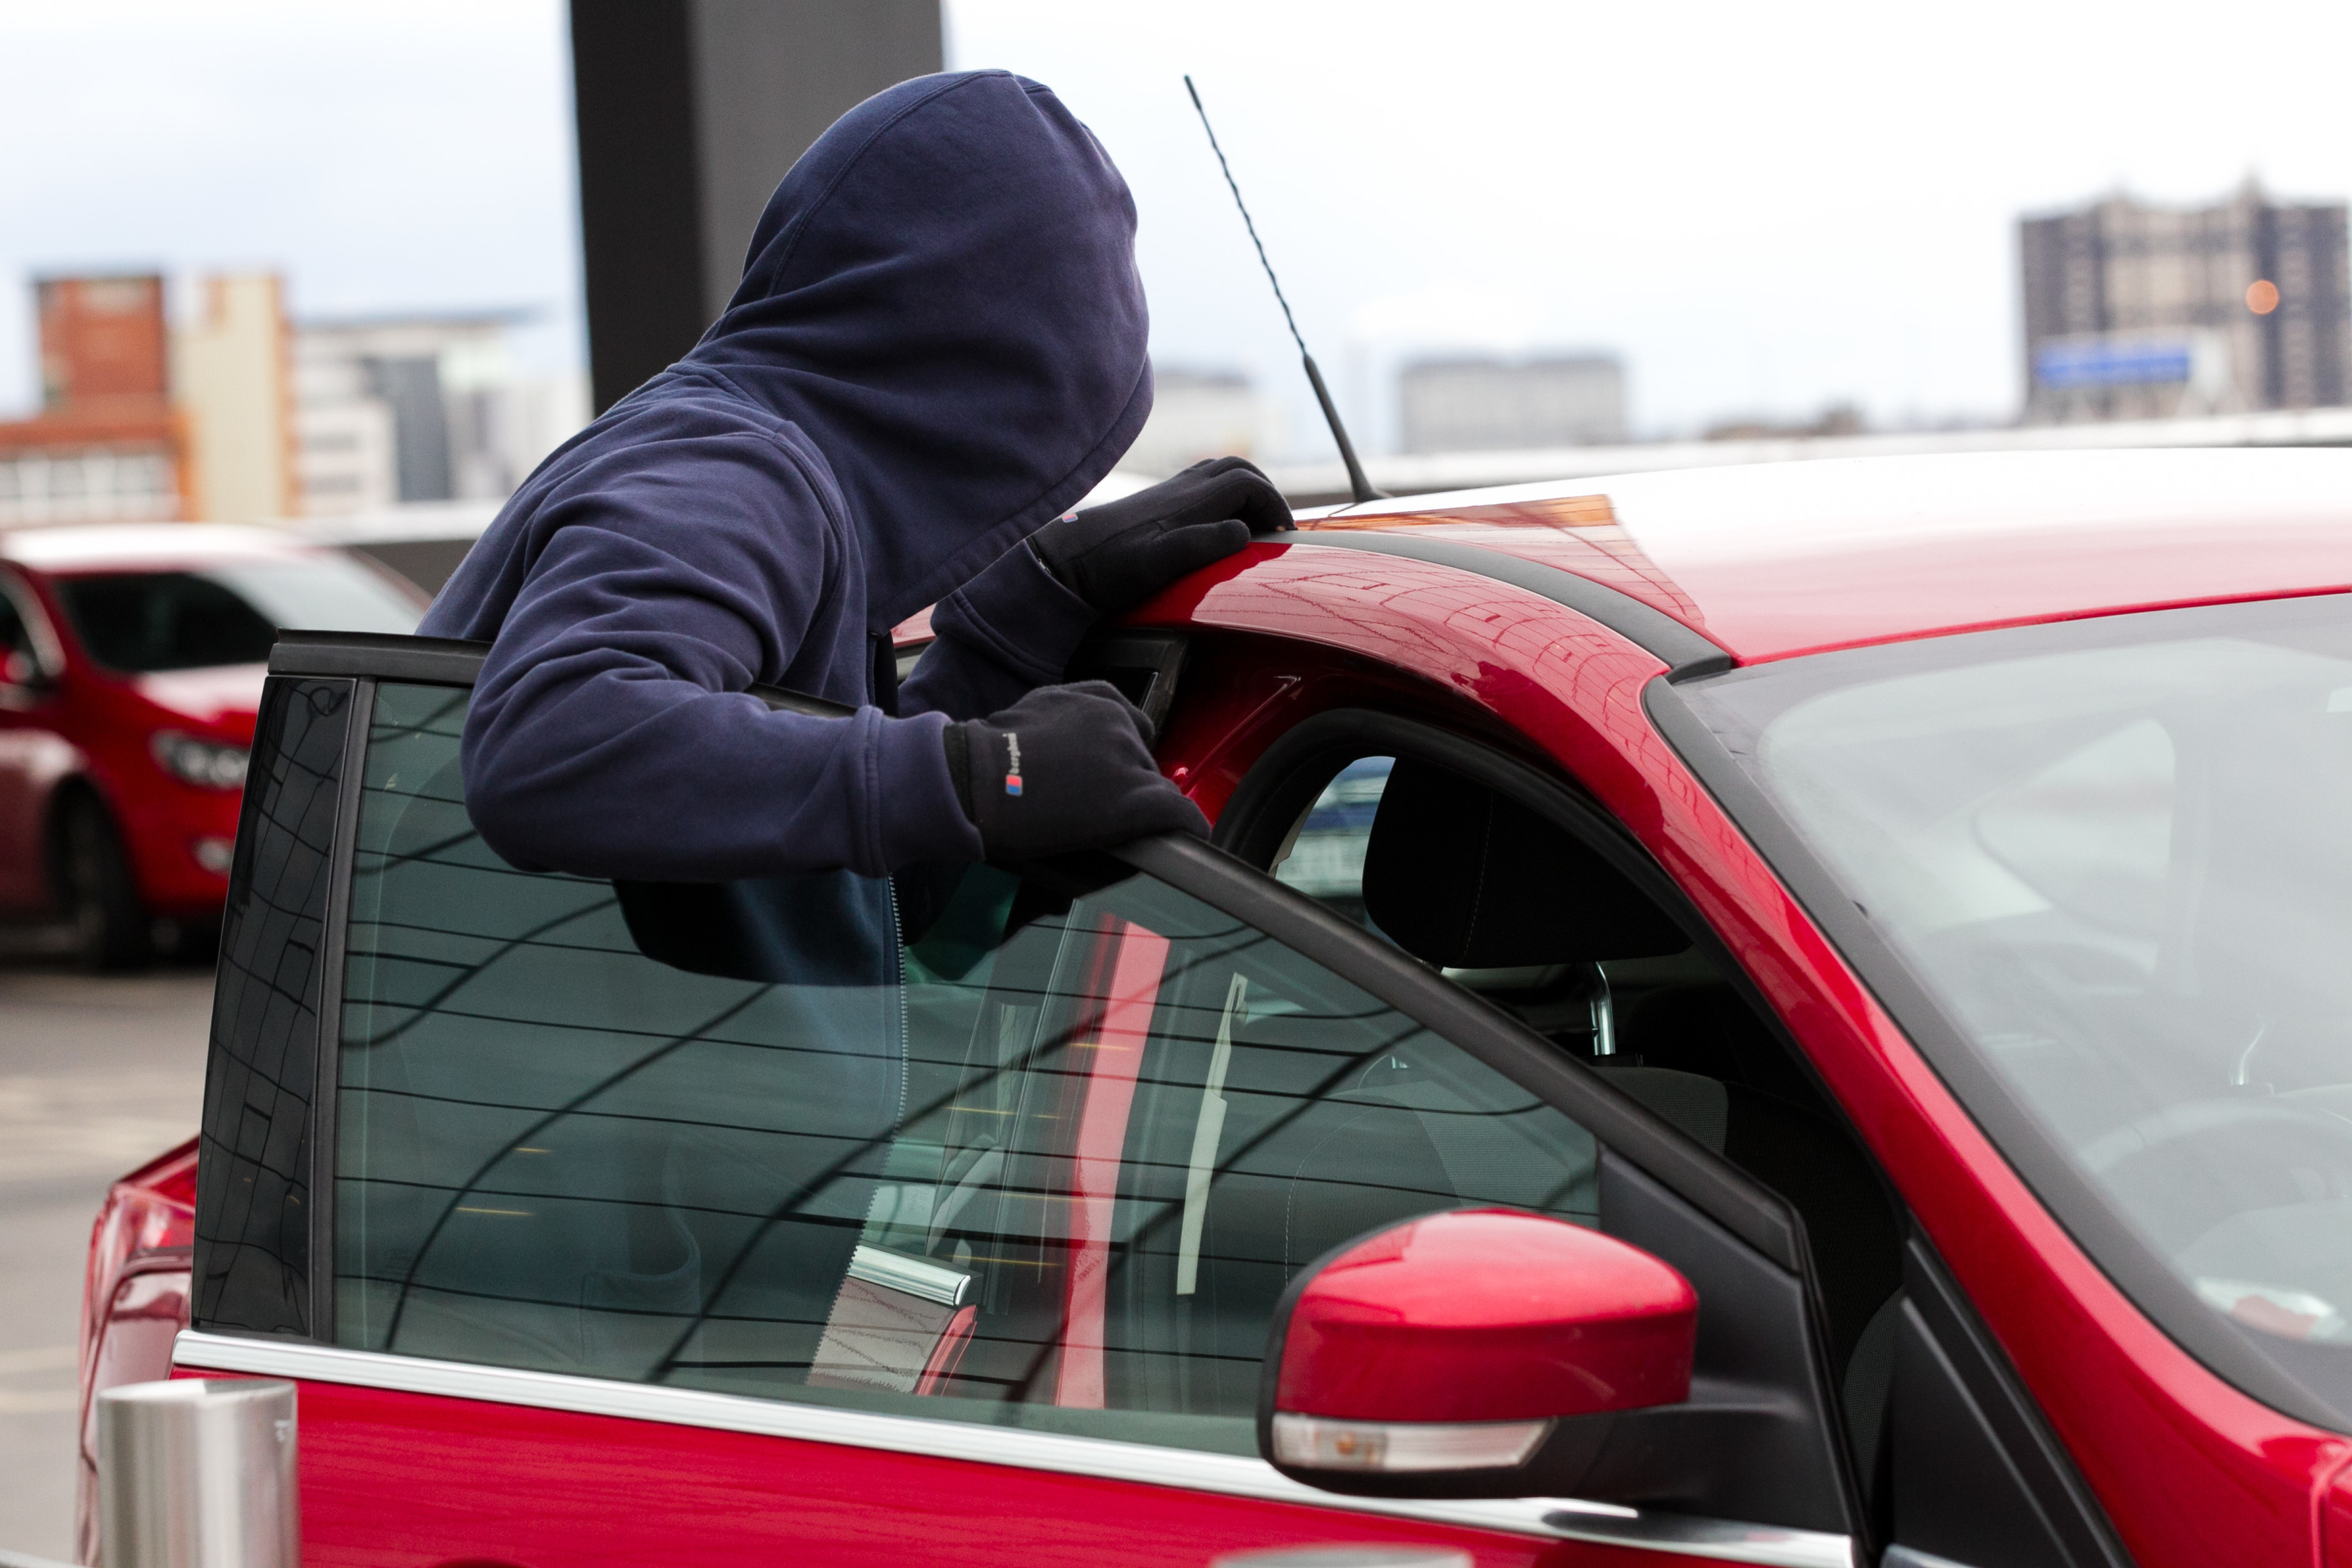 15 gadget allows car thieves to steal vehicles in seconds